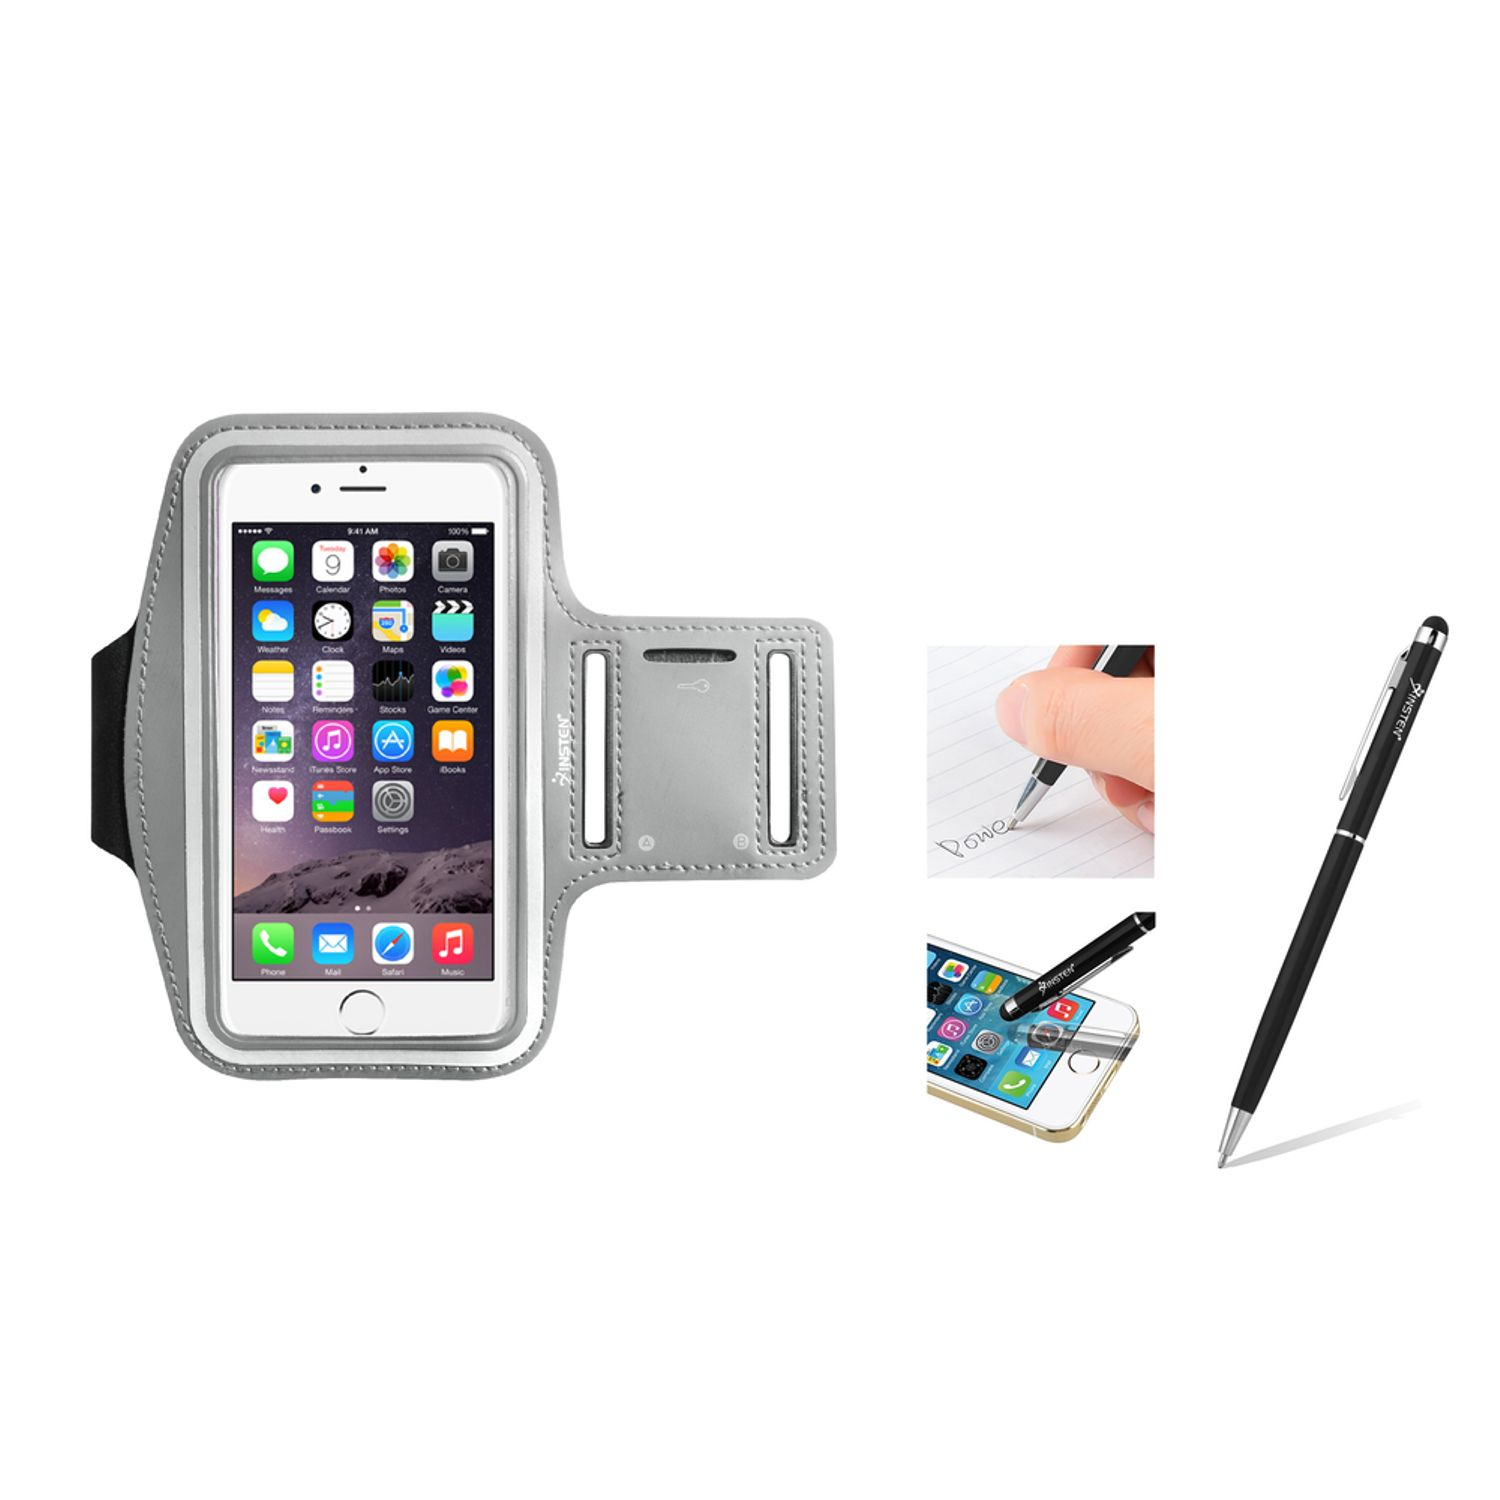 "Insten Silver Armband Gym Case w/ Key Holder For iPhone 6S Plus 6 Plus 5.5"" (with Stylus Ballpoint Pen)"